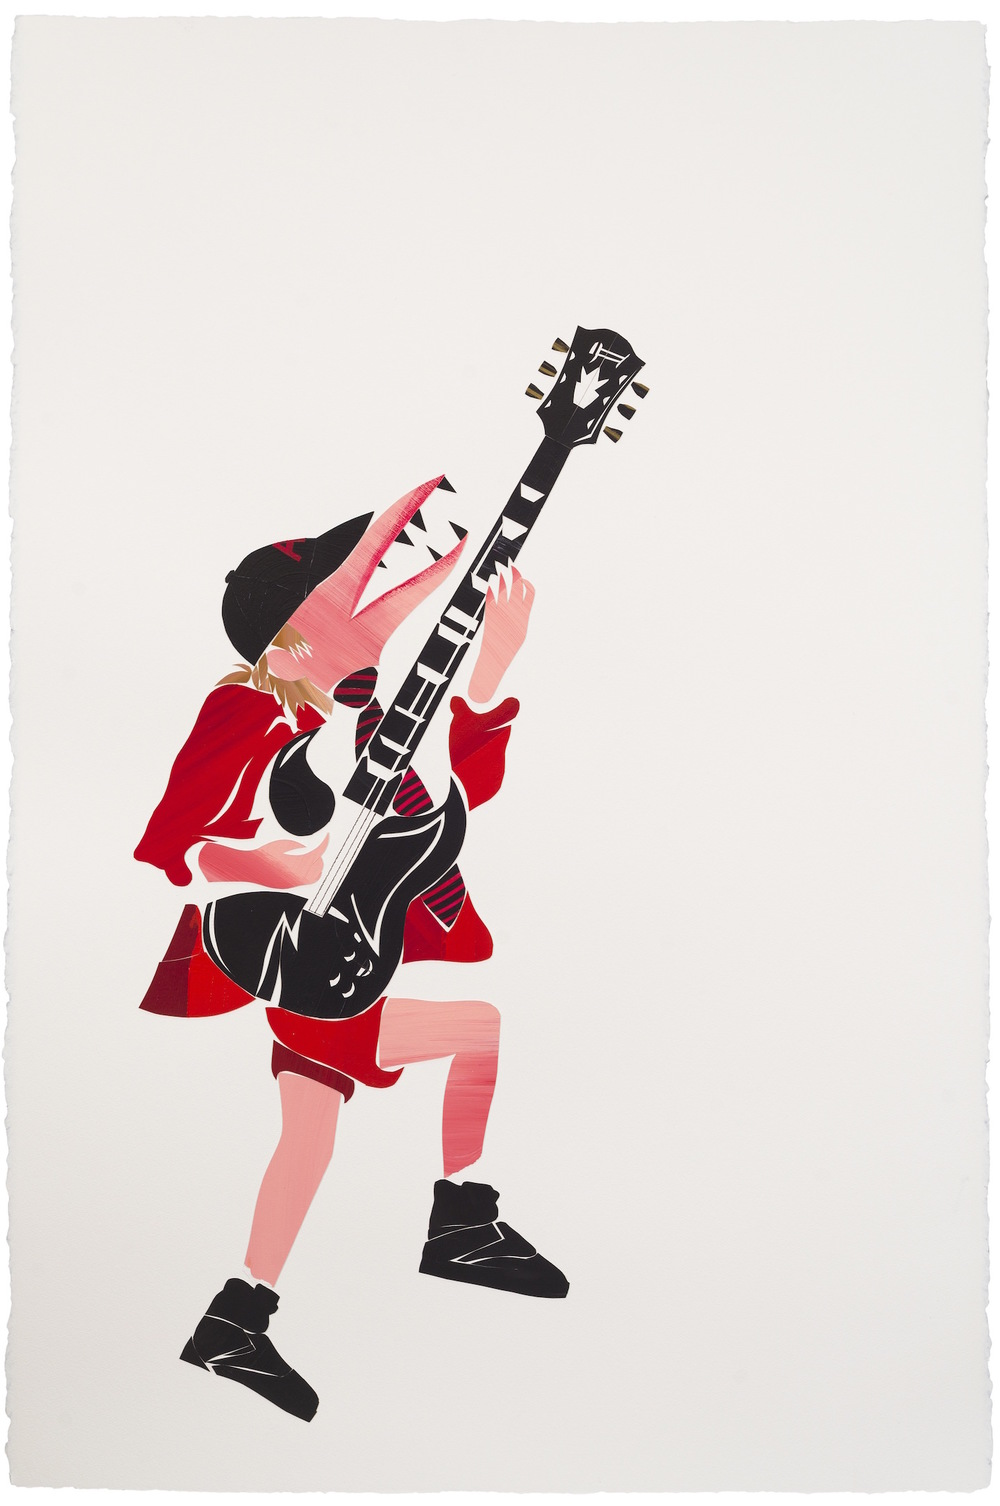 Angus Young AC/DC 2015. Oil on paper, 160 x 120 Cm